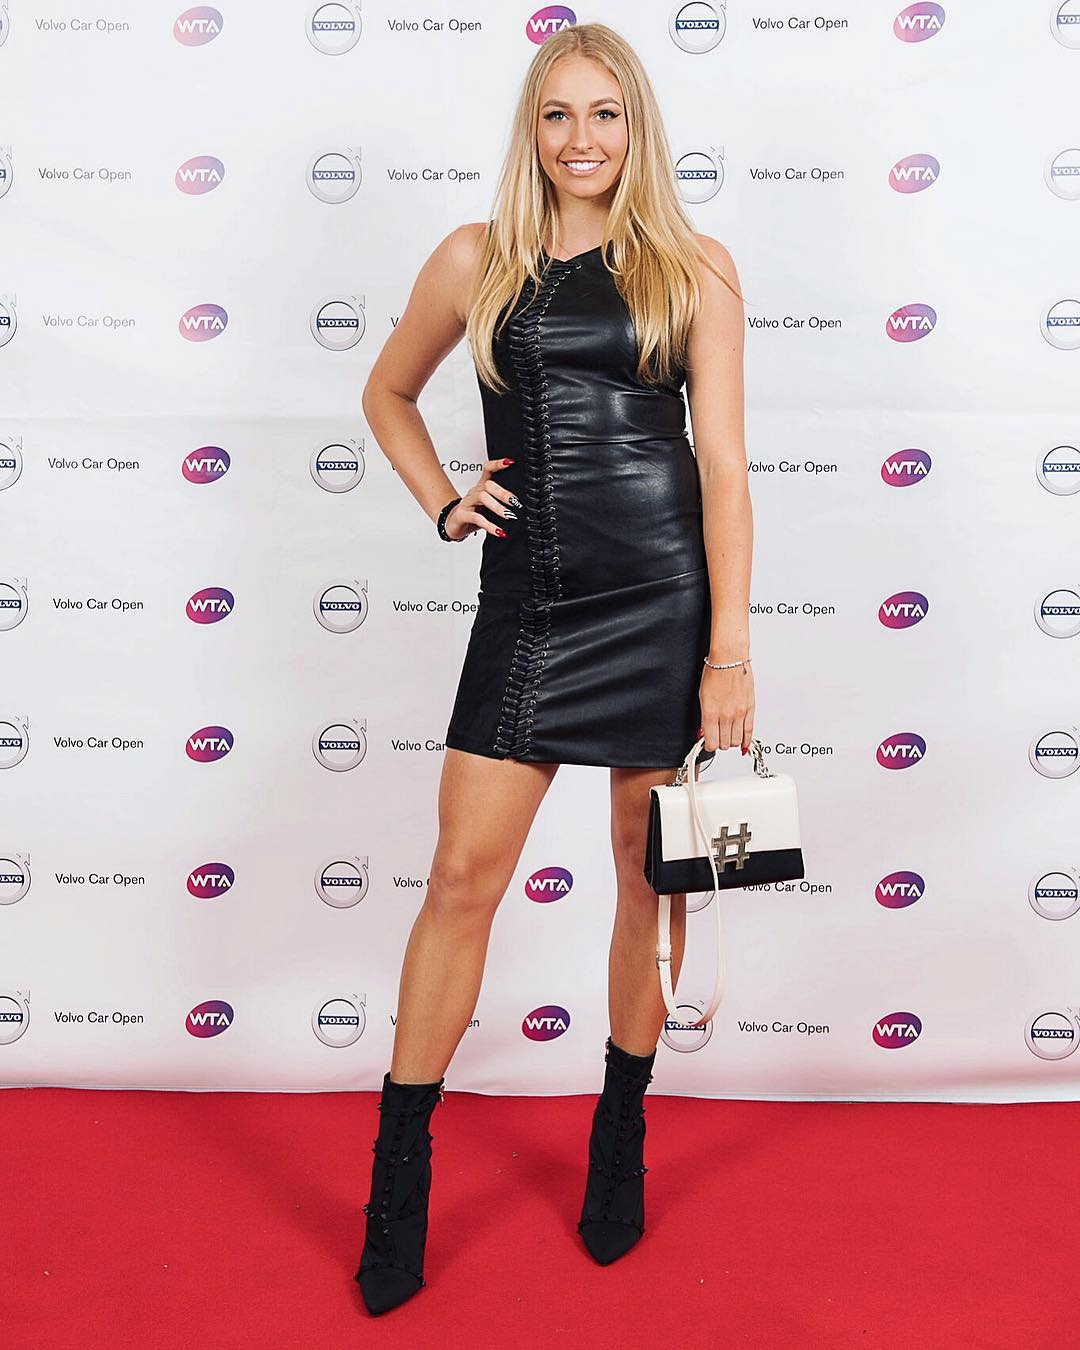 Fanny Stollar Hot Black Dress On red Carpet - Fanny Stollar Hot Black Dress On red Carpet